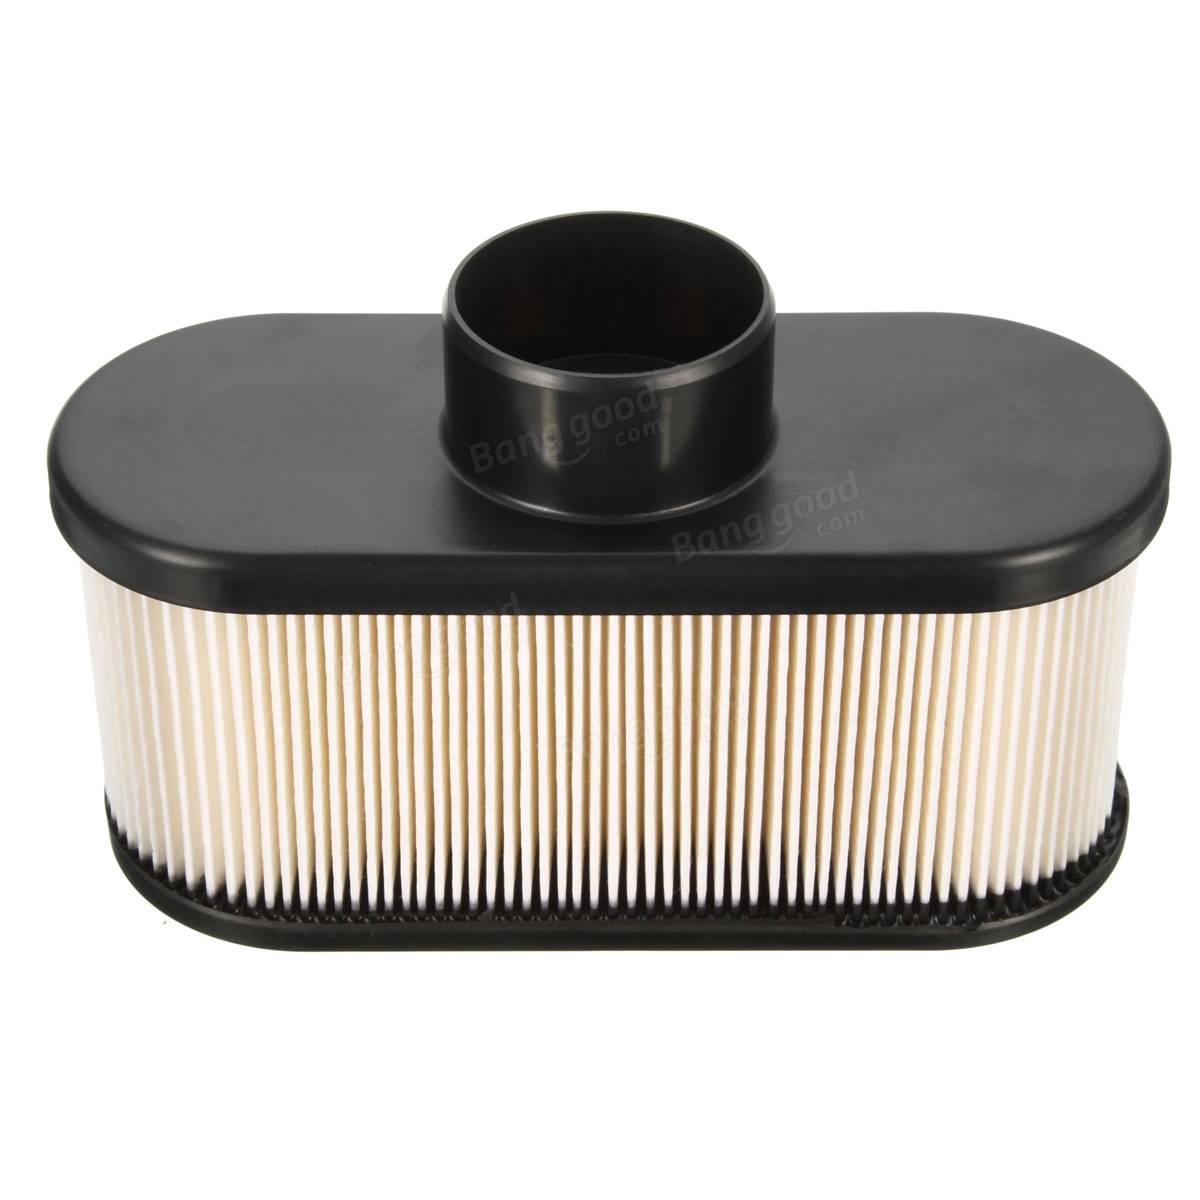 Mower Air Filter For Kawasaki FR FS 99999-0384 11013-7047 11013-7049